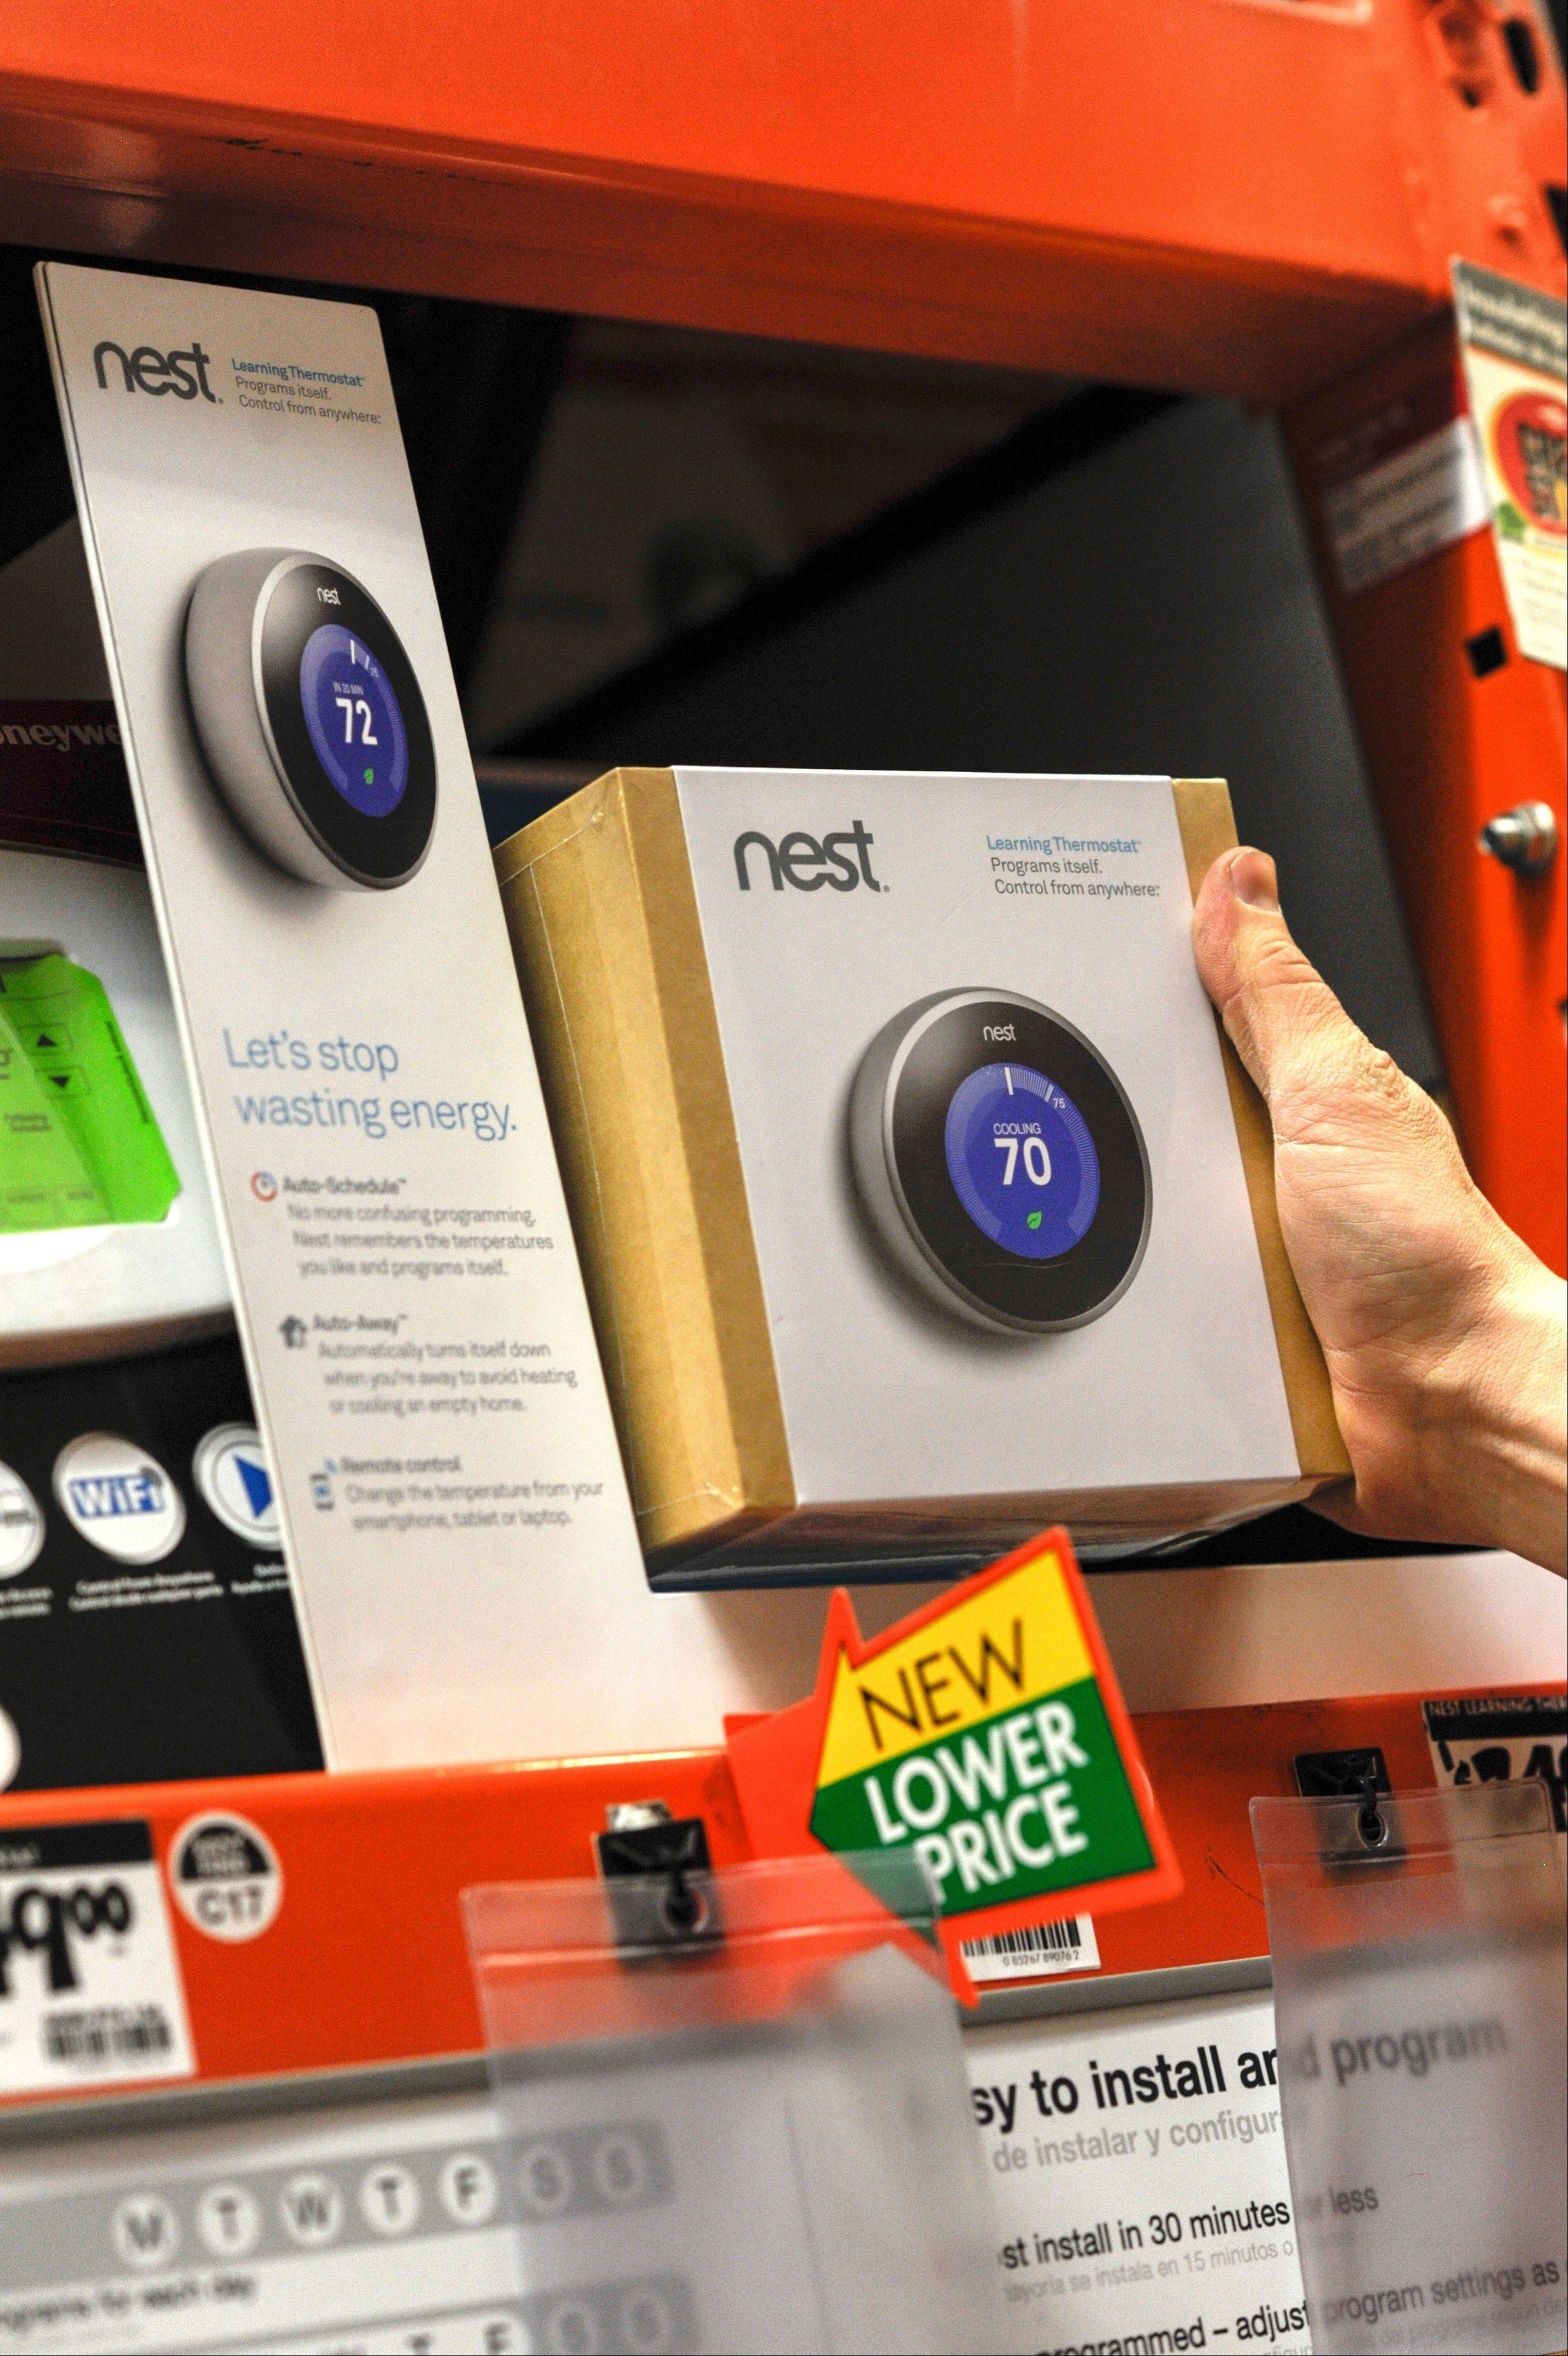 A customer views a Nest Labs Inc. digital thermostat at a Home Depot Inc. store in Emeryville, California, U.S., on Tuesday, Jan. 14, 2014. Google Inc., after struggling to catch Apple Inc. in consumer gadgets, is buying Nest Labs Inc., the digital thermostat maker for $3.2 billion in cash.